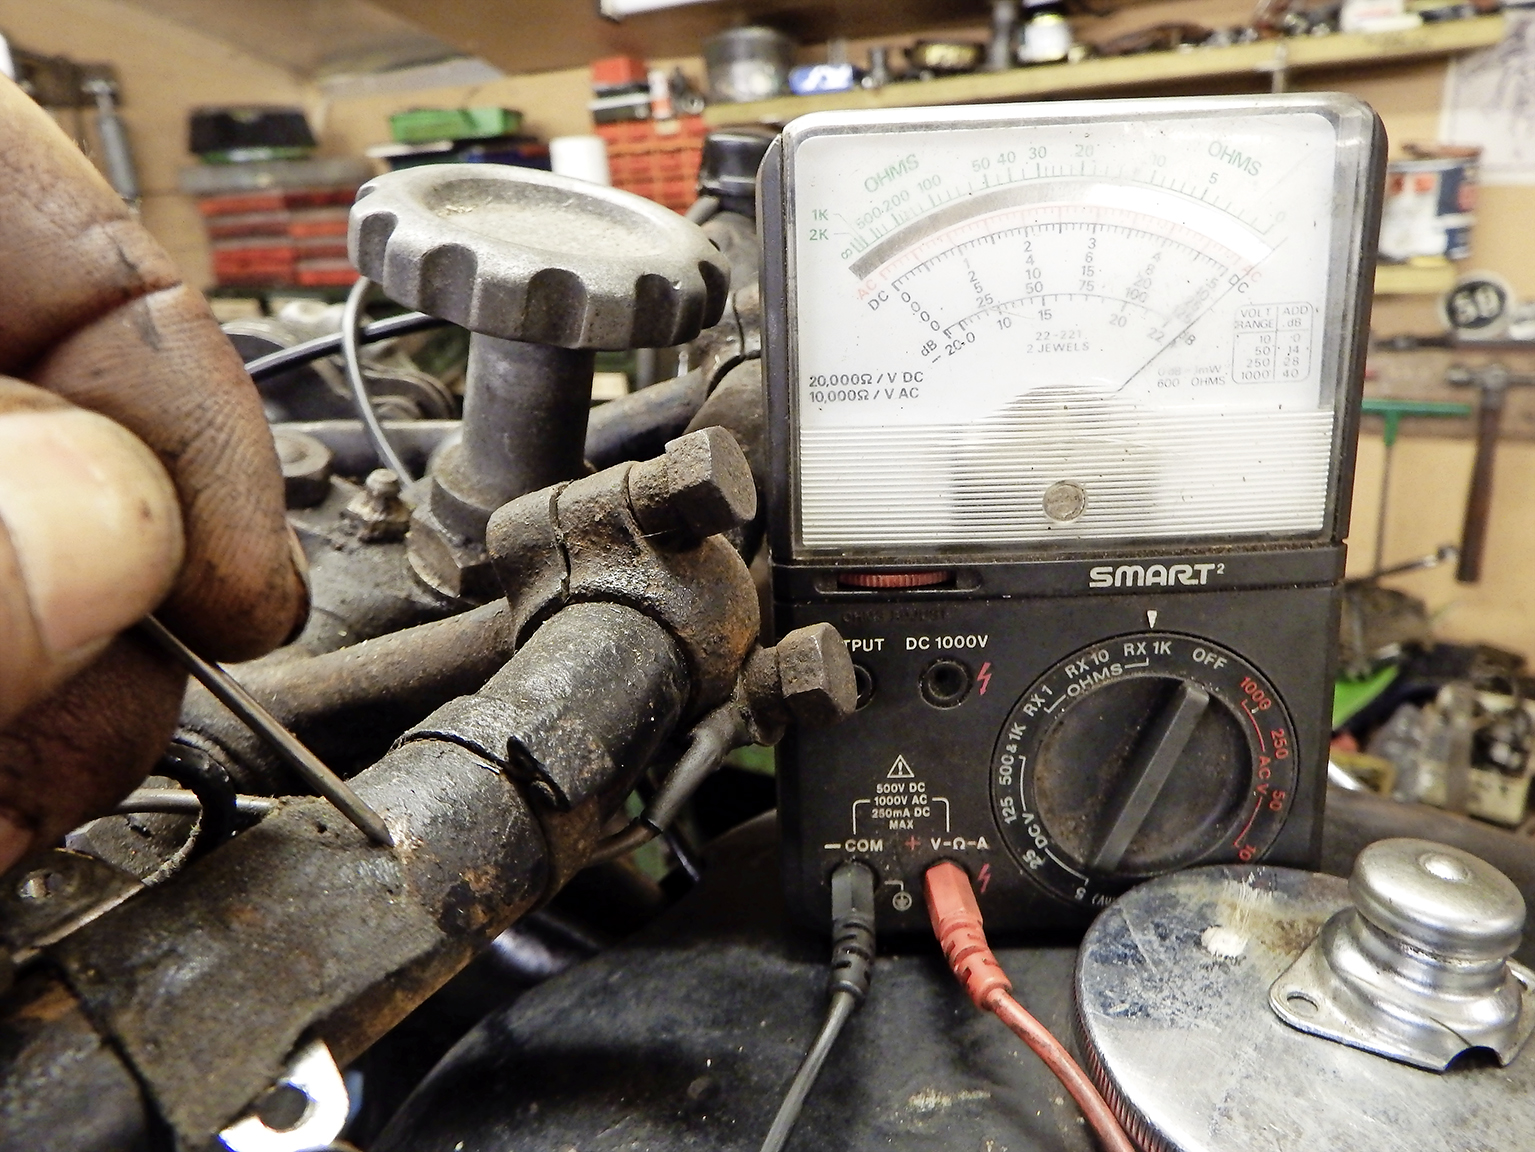 2.  While the meter's out, set to resistance (ohms) and check the handlebar is a good earth. Often they are not – especially when rubber-mounted. But we're OK here.